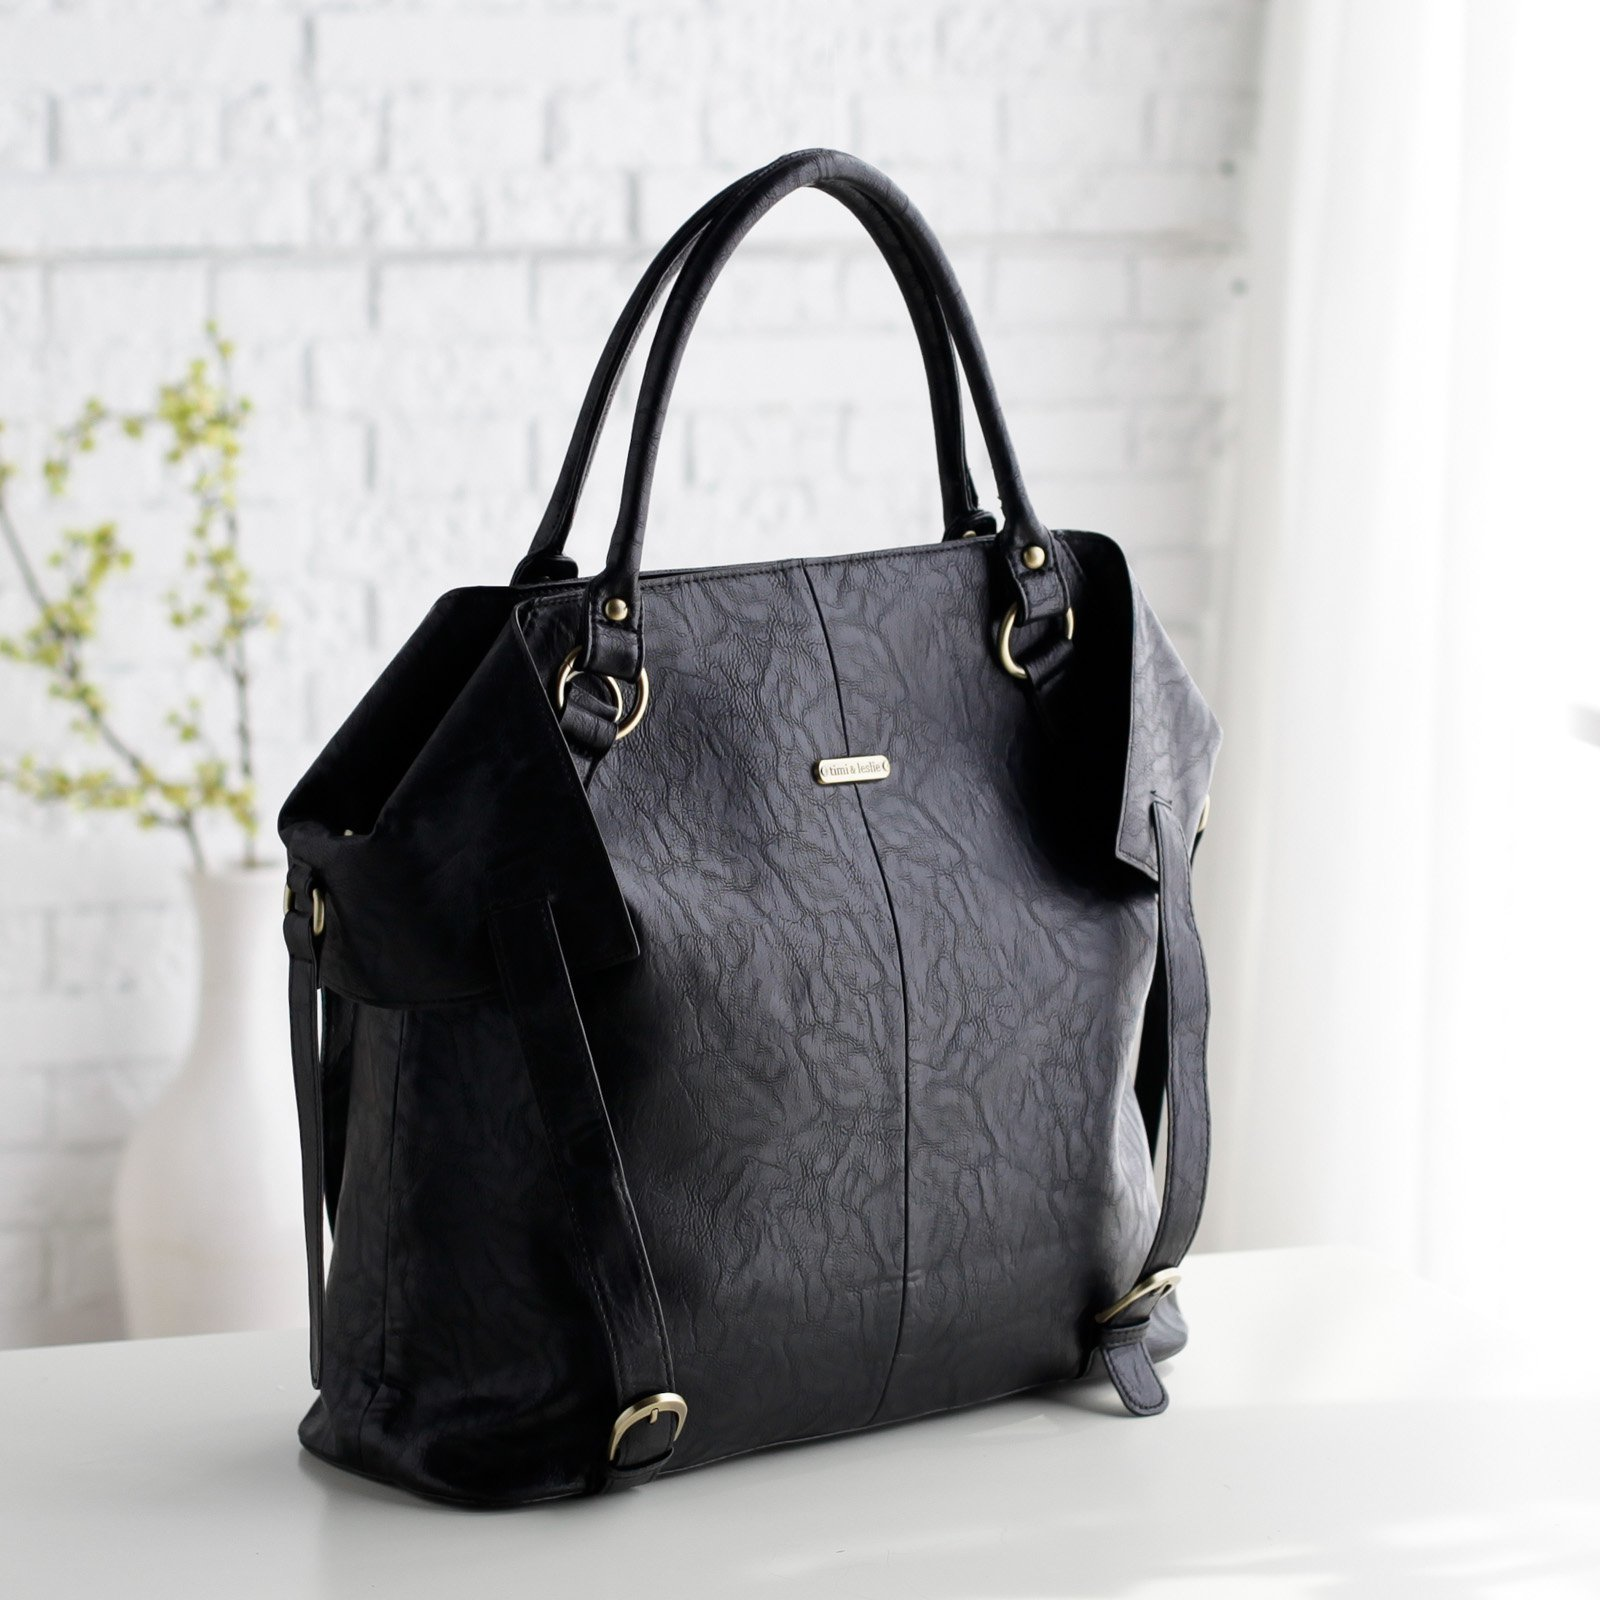 Timi And Leslie Charlie Tote Diaper Bag Black Fossil Lucy